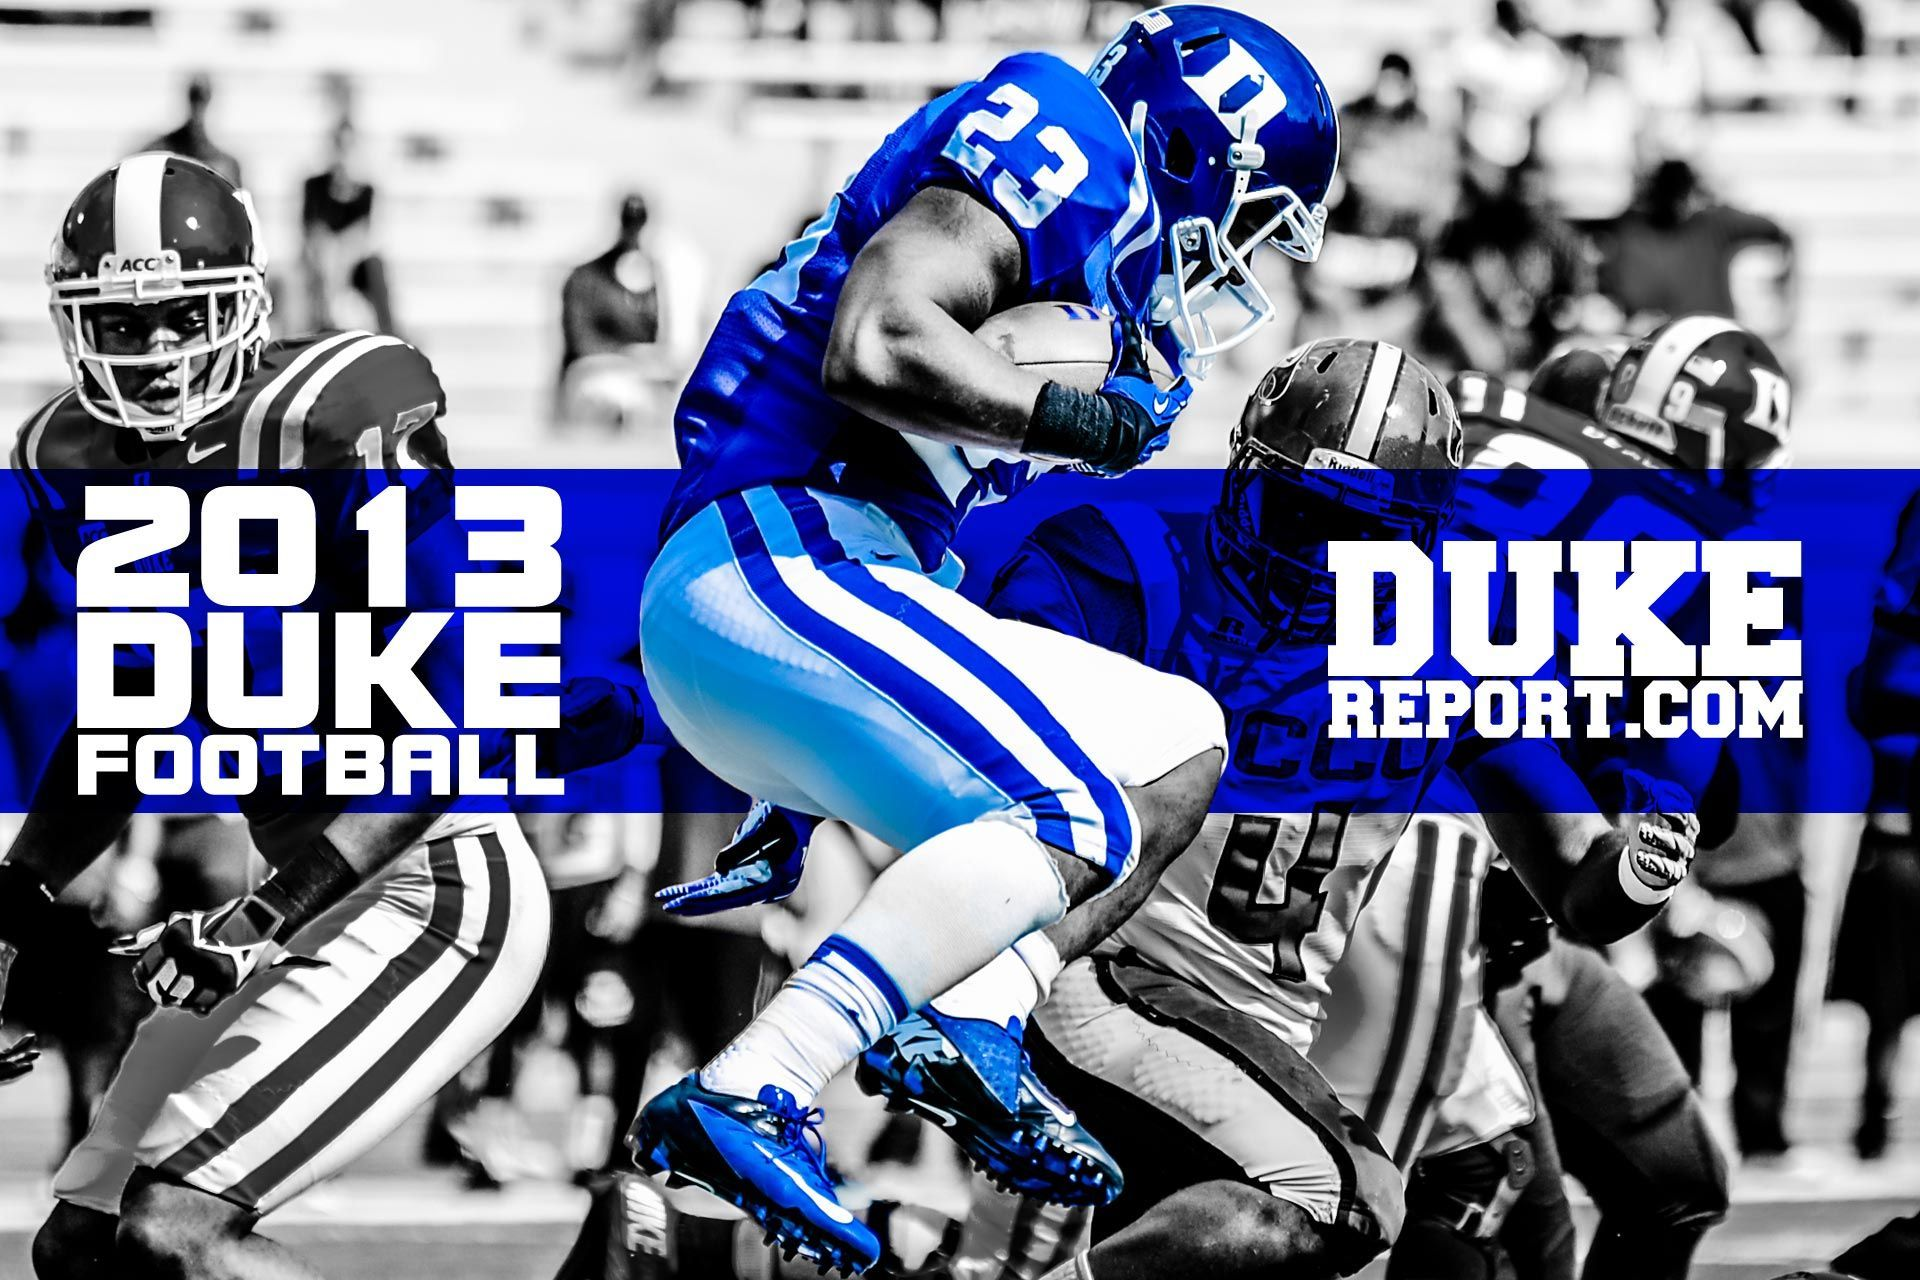 Duke Football Wallpaper